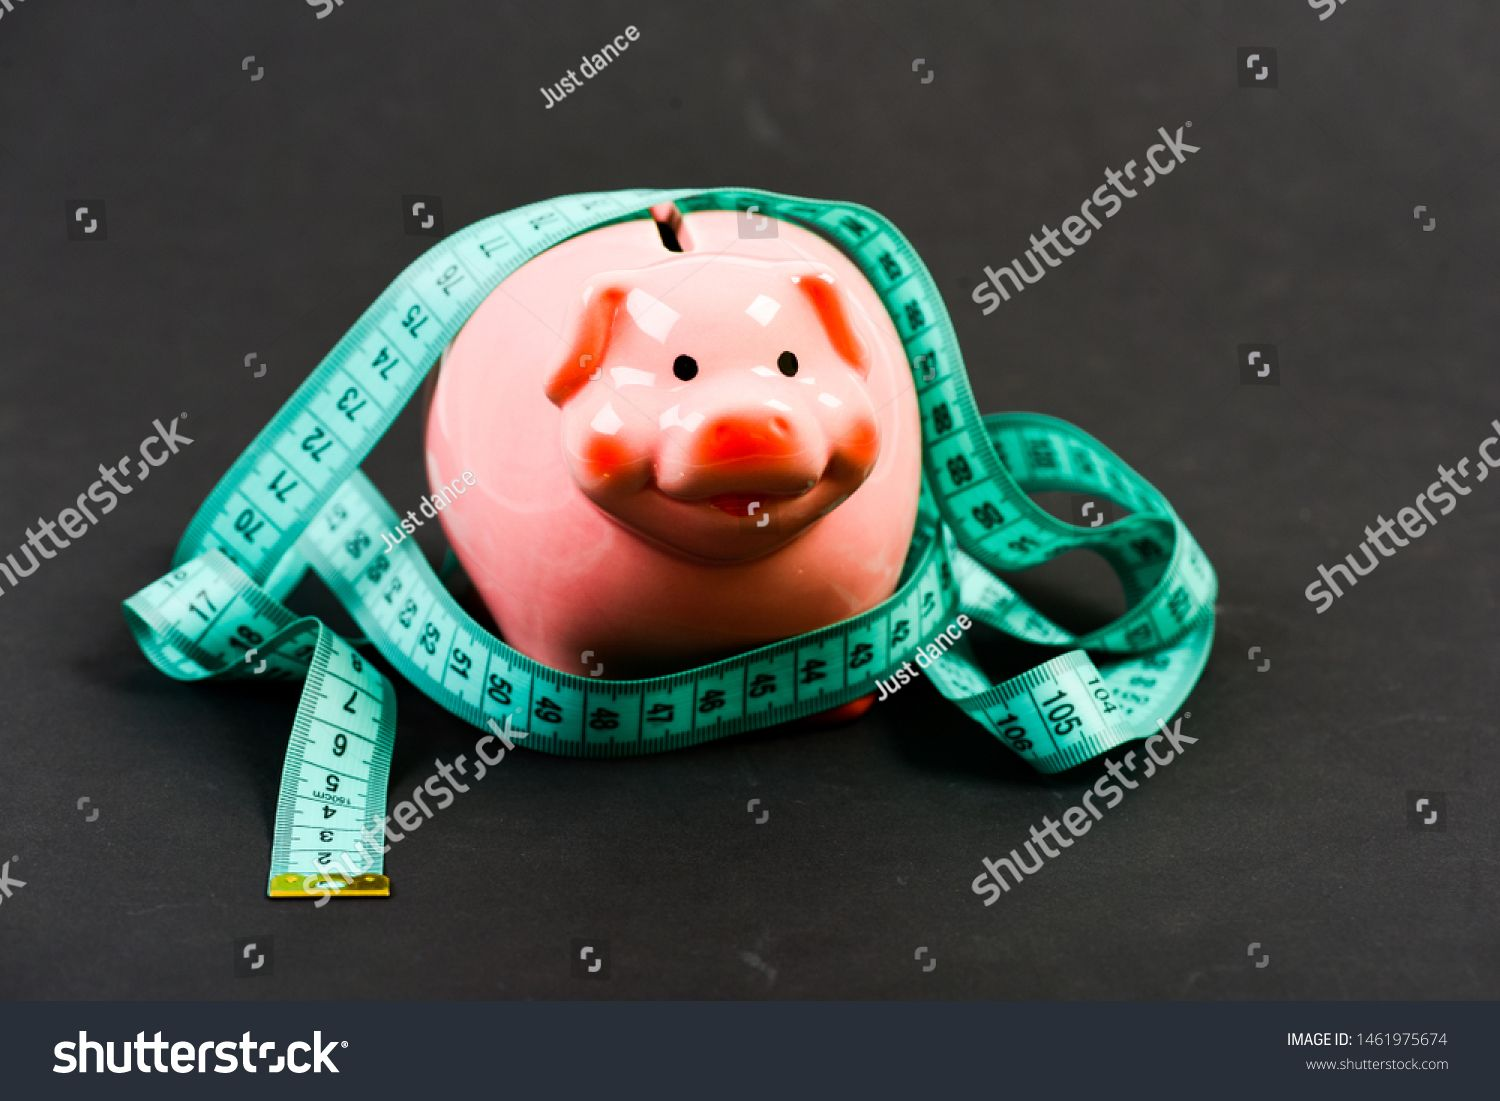 Piggy bank and measuring tape Budget limit concept Financial consulting Economics and finances Pig trap Budget crisis Planning budget Business problem Limited or restrict...